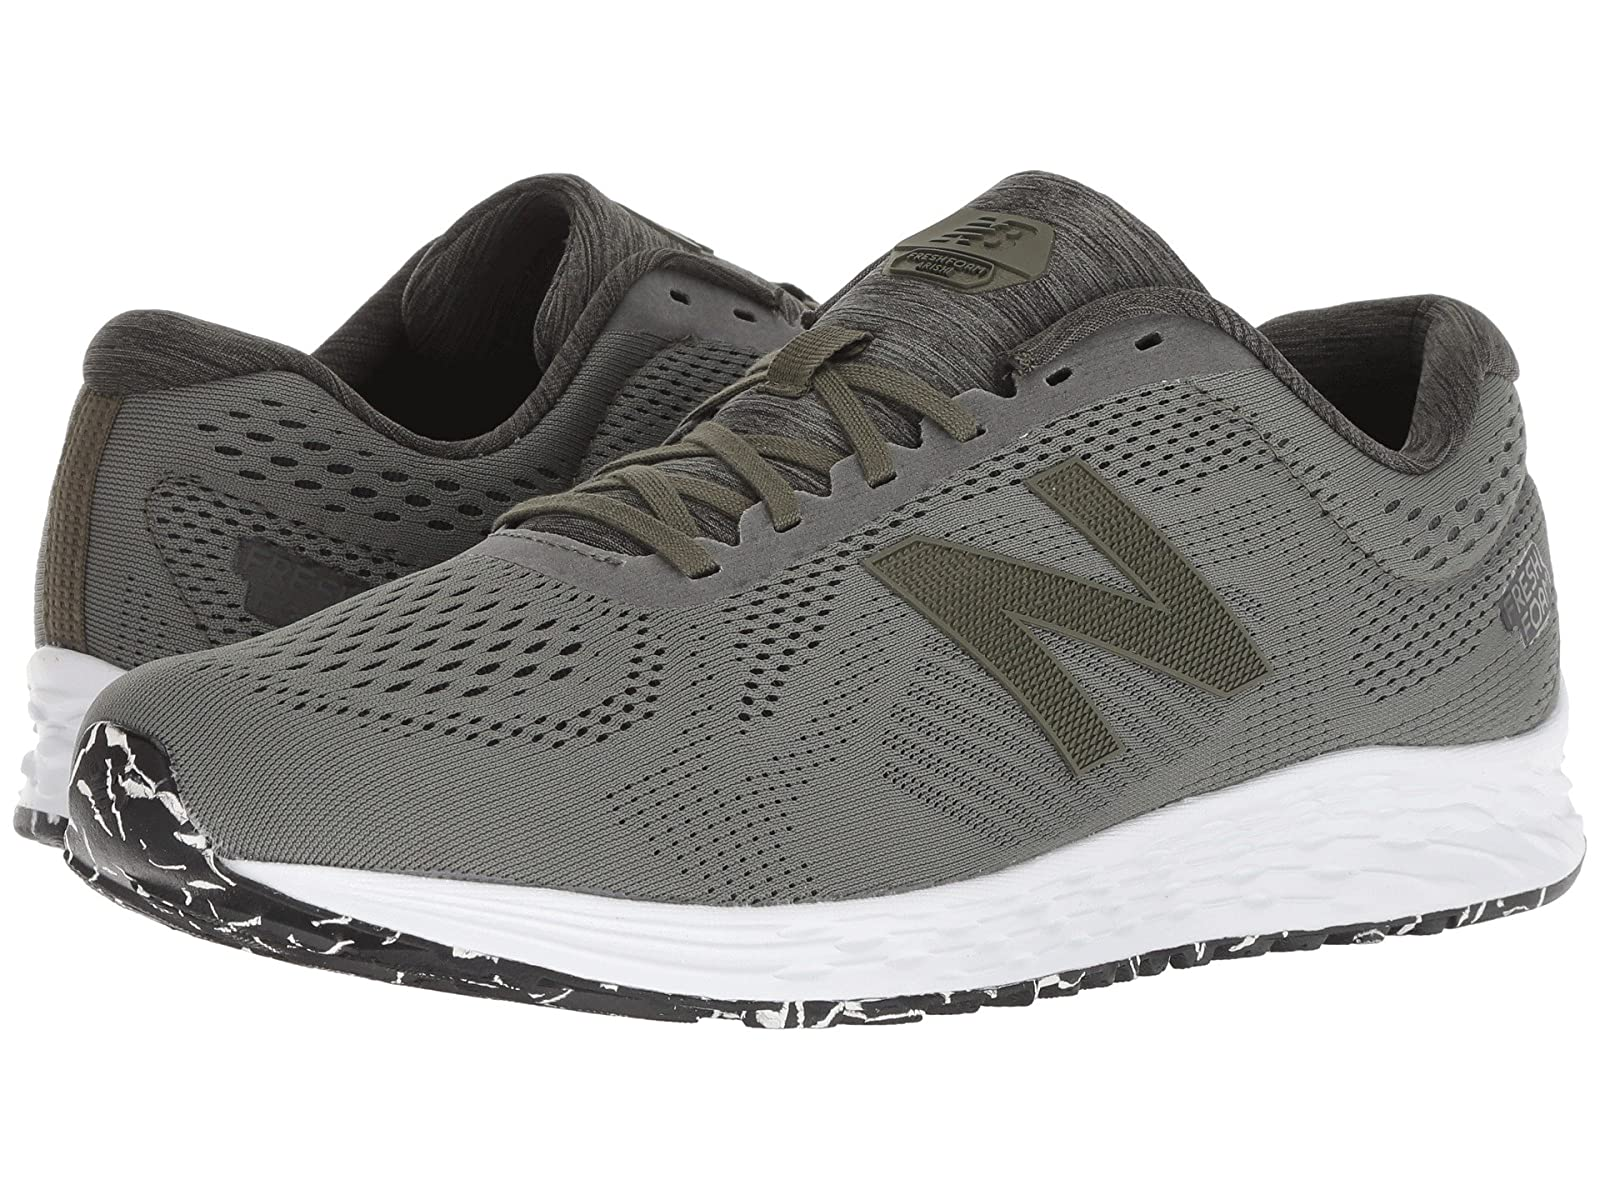 New Balance Arishi v1Atmospheric grades have affordable shoes